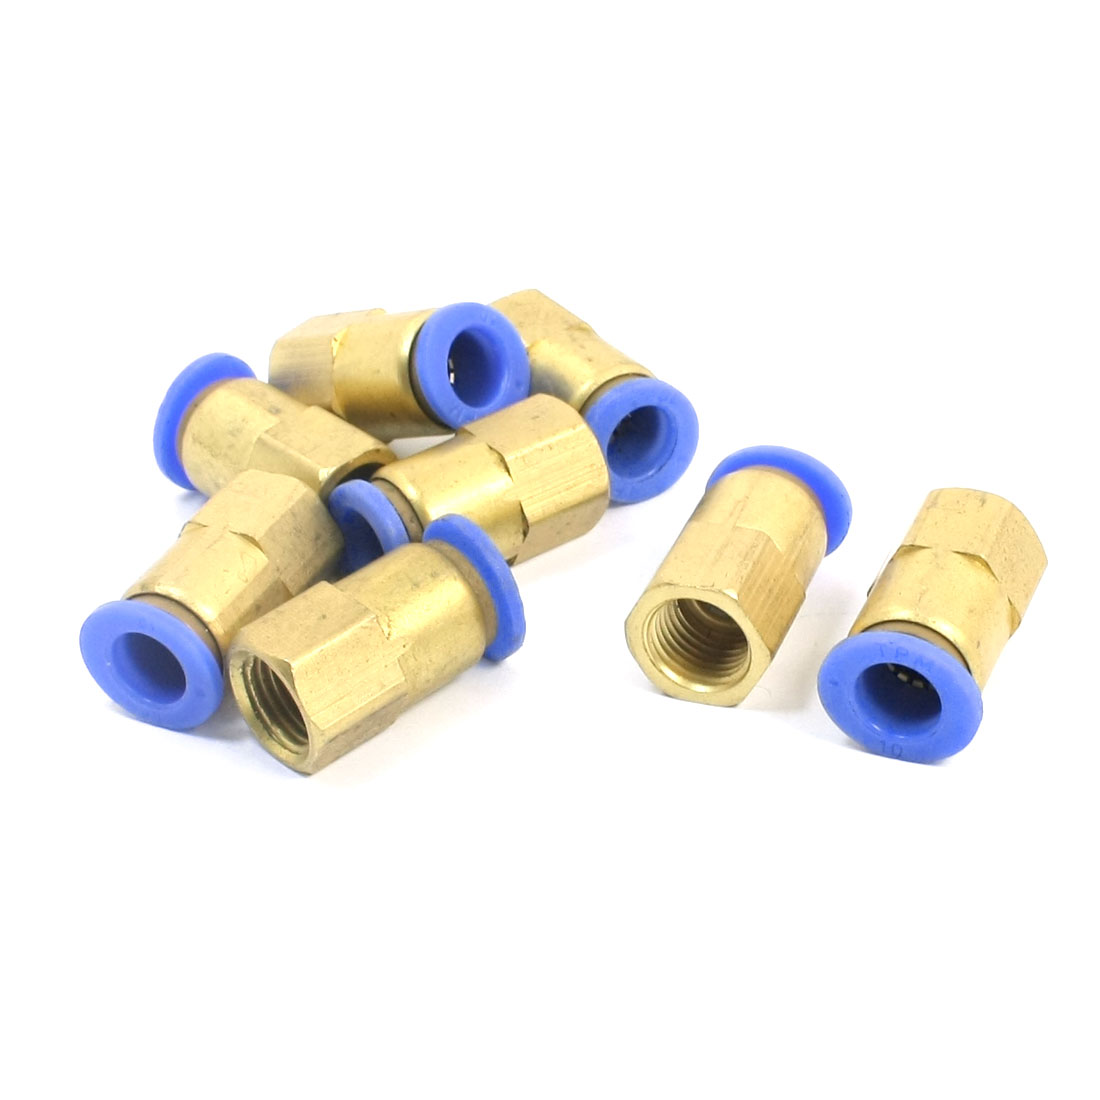 8pcs 11mm Female Thread to 10mm Pipe Push in Pneumatic Air Quick Fitting Connector Coupler PCF10-02